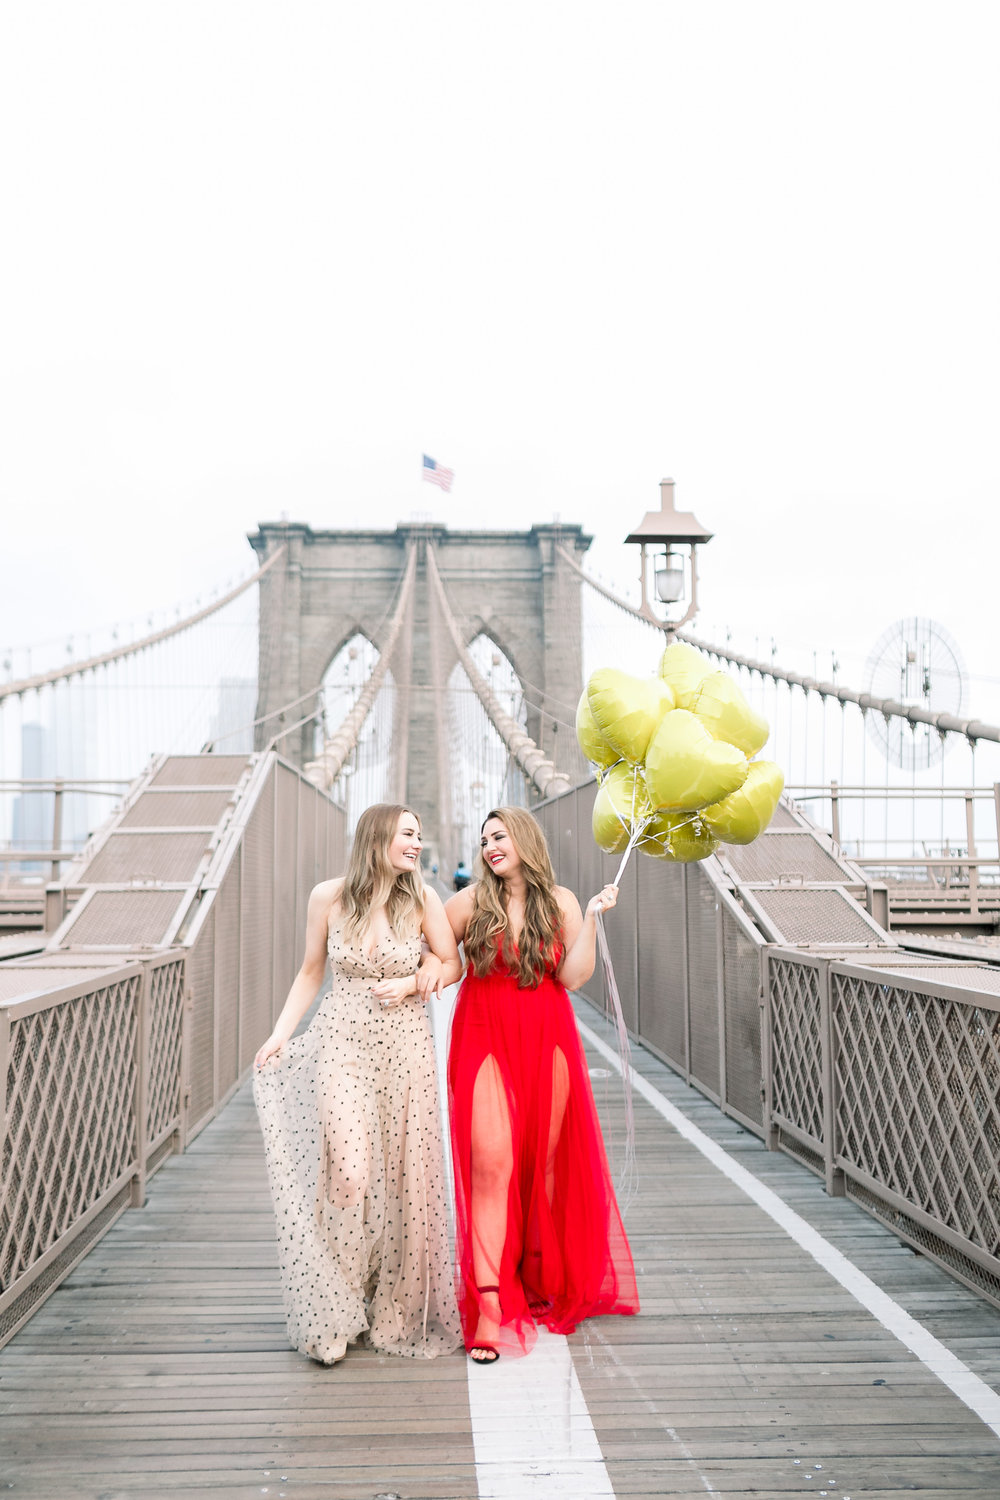 Collins Tuohy Smith and Megan Bonner on Brooklyn Bridge New York City by Mary Kate Steele Photography